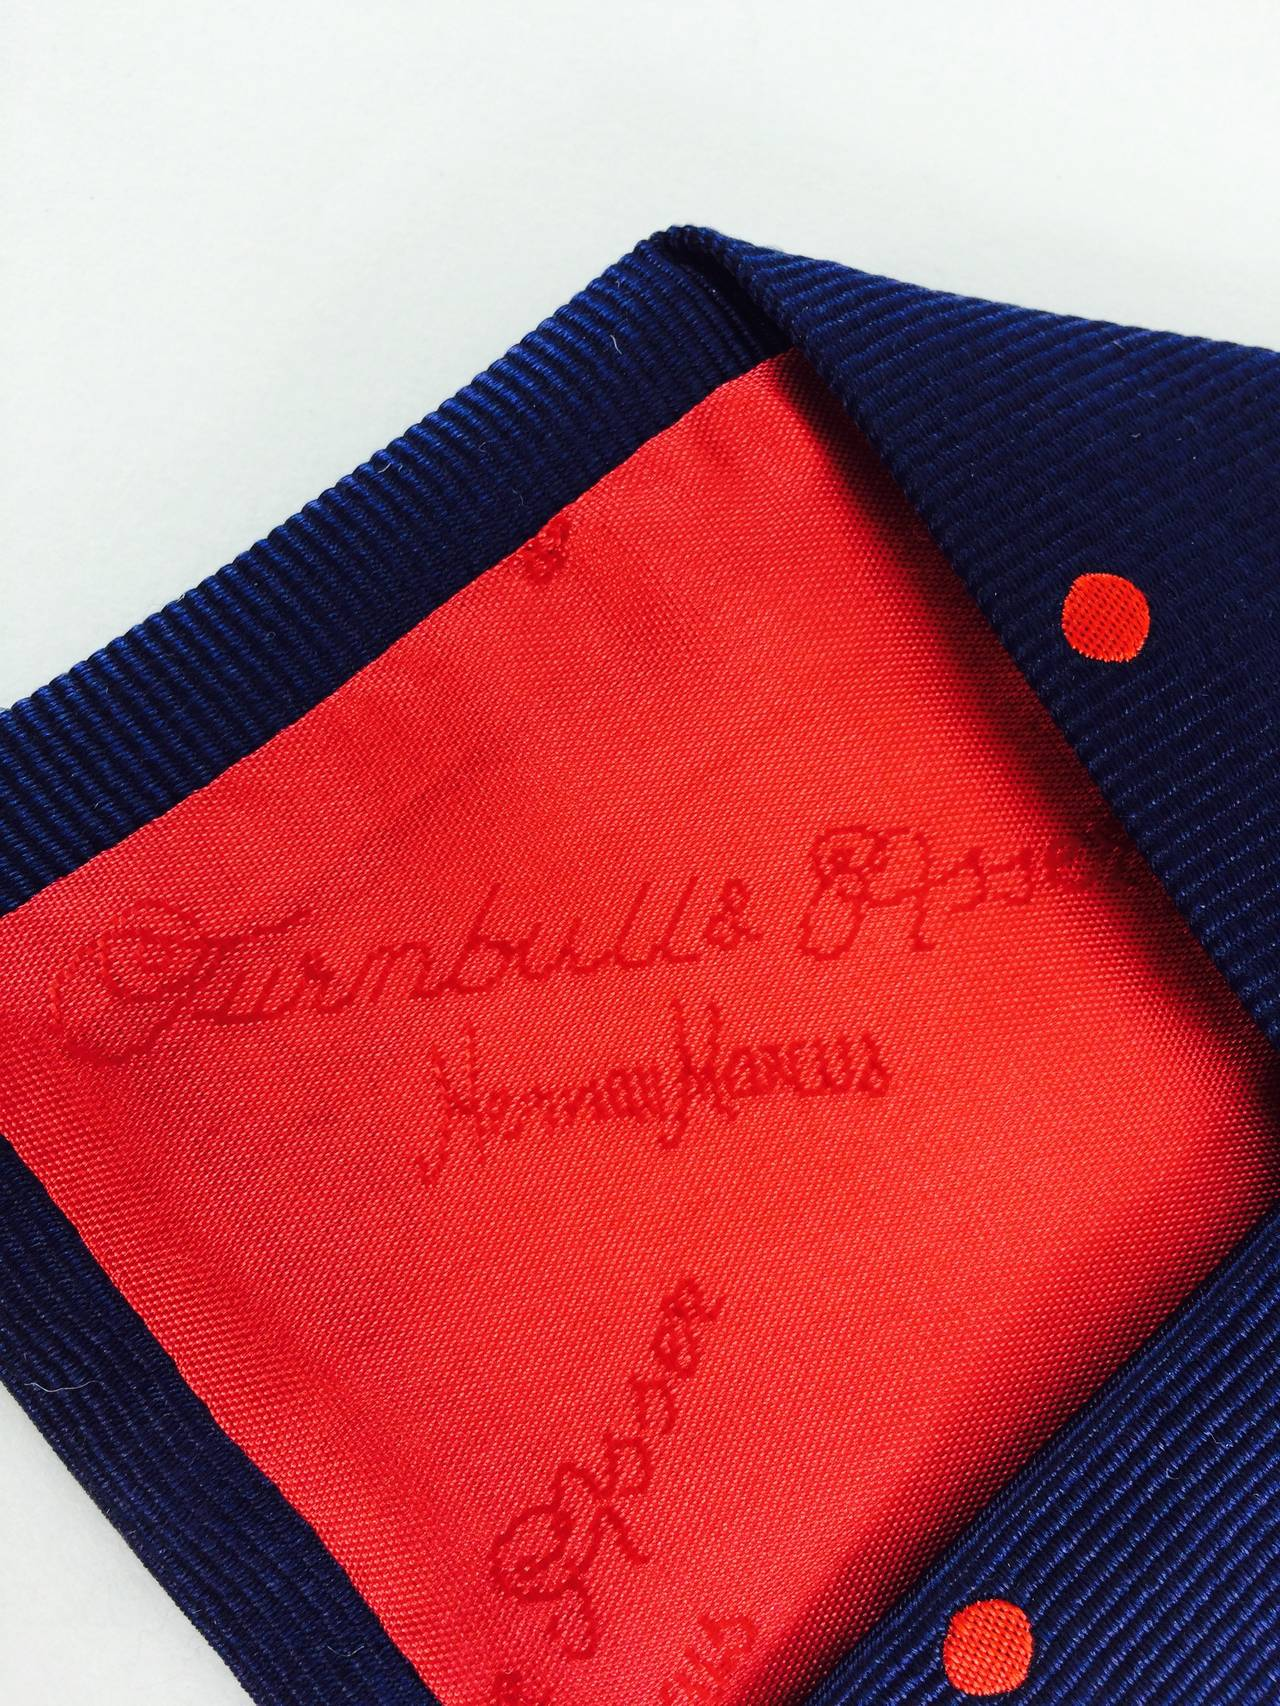 Turnbull & Asser navy blue silk twill tie In Excellent Condition For Sale In West Palm Beach, FL